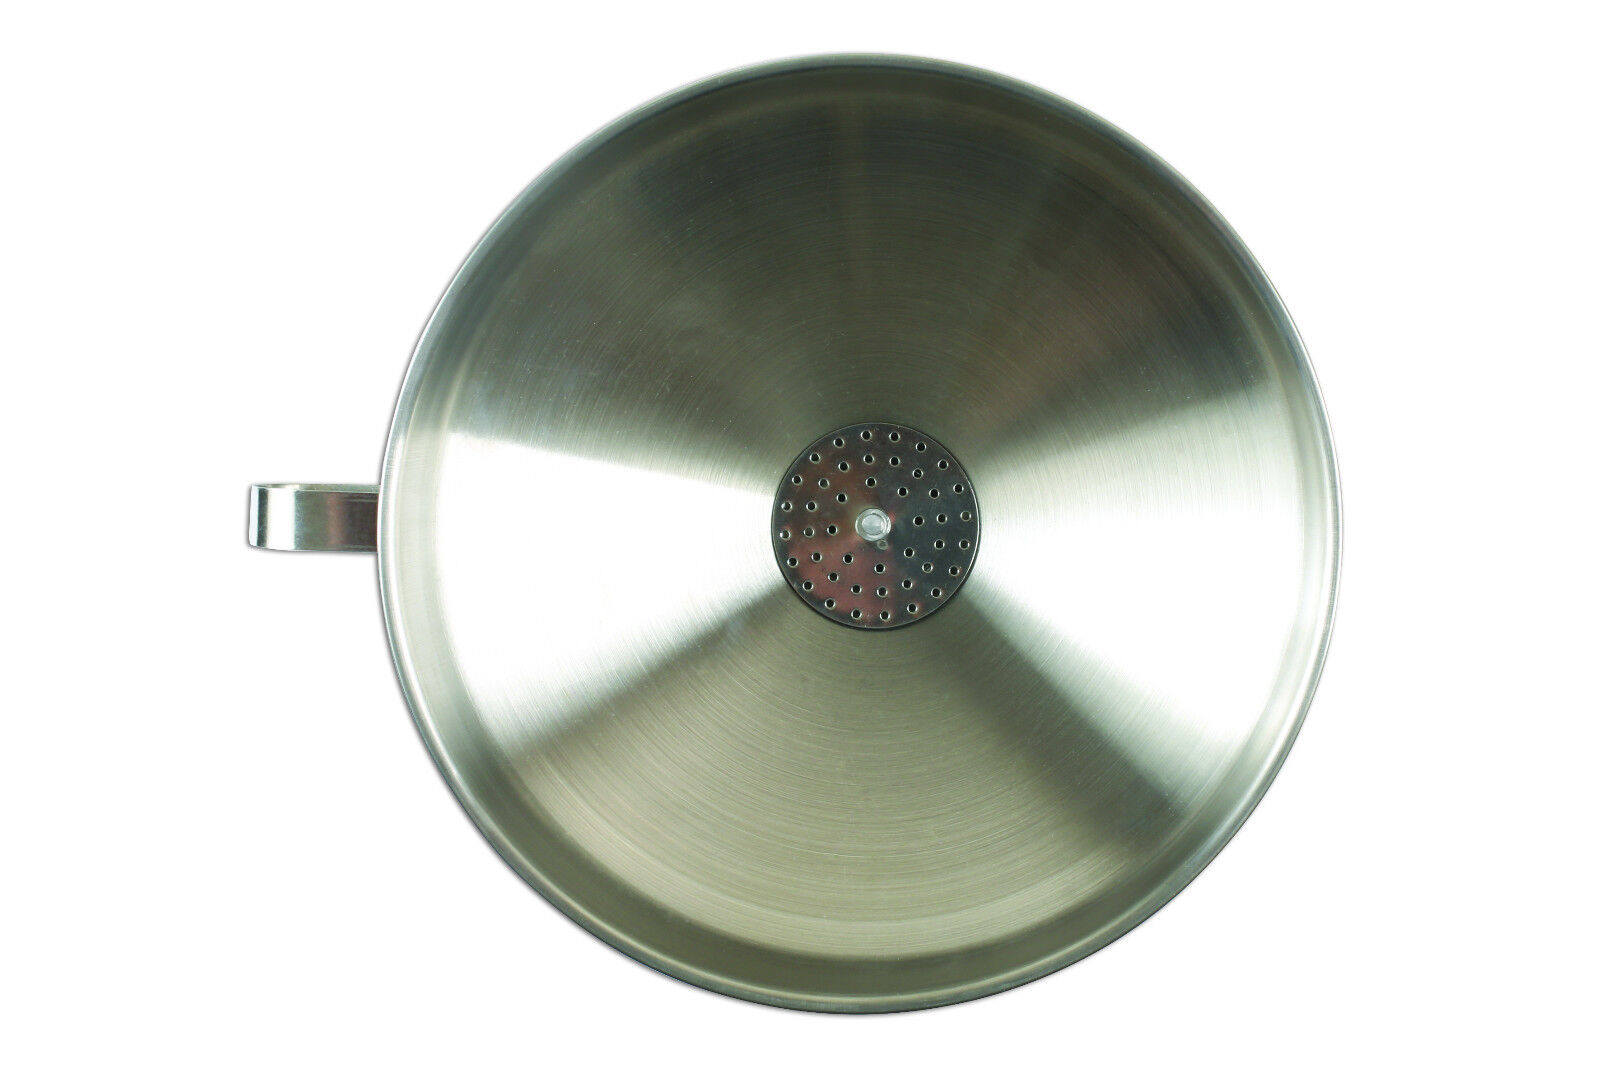 SS201 Stainless Steel Funnel Set 100mm 120mm 140mm Ideal For Kitchen!